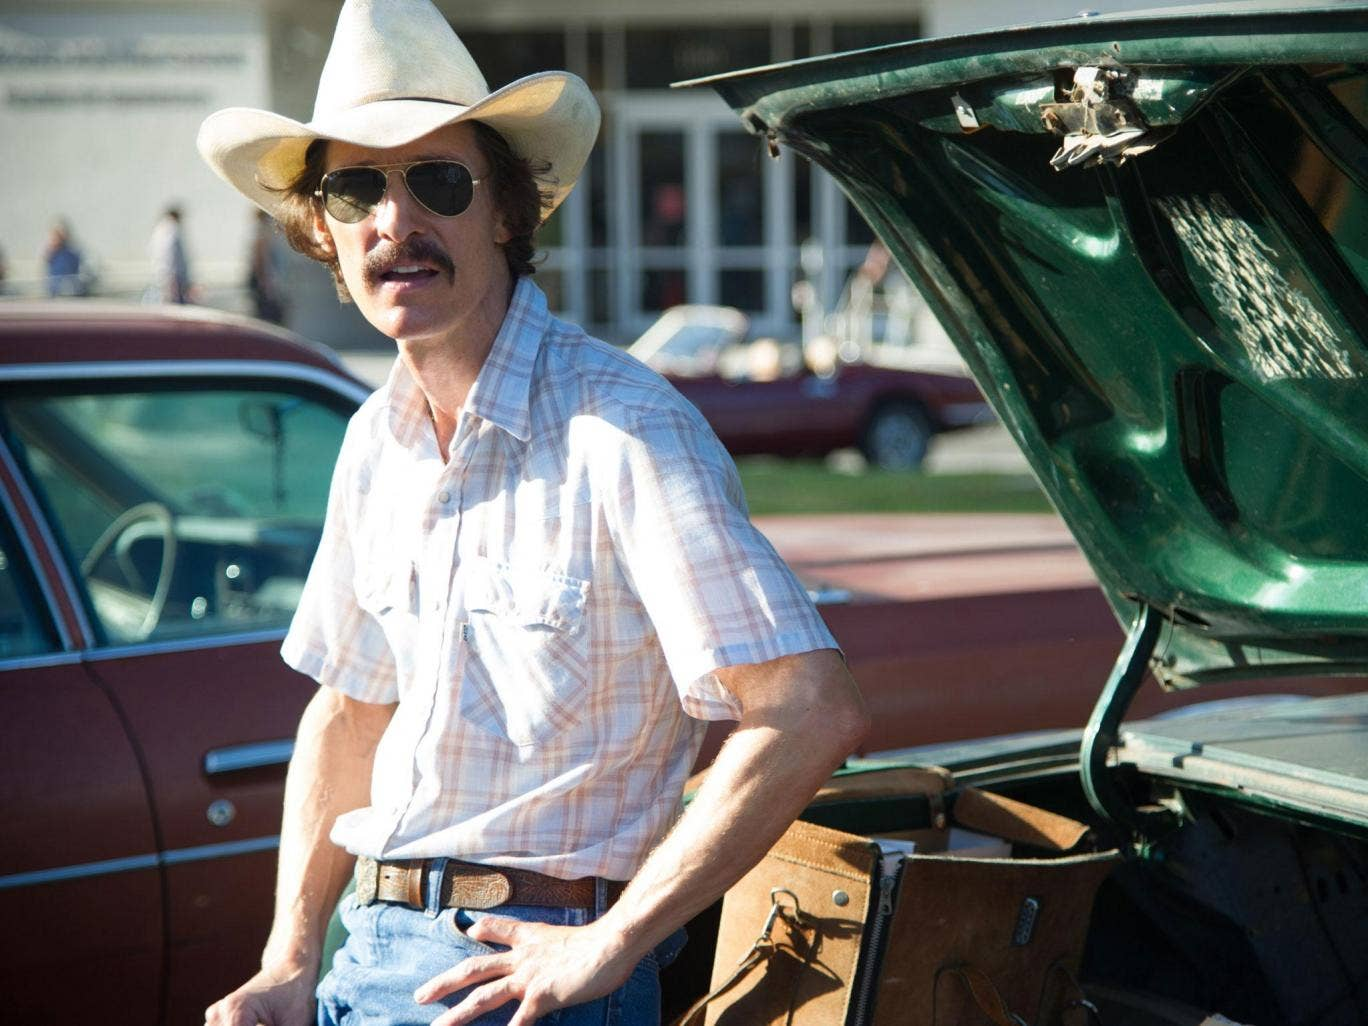 Matthew McConaughey as drugs smuggler Ron Woodroof in Dallas Buyers Club